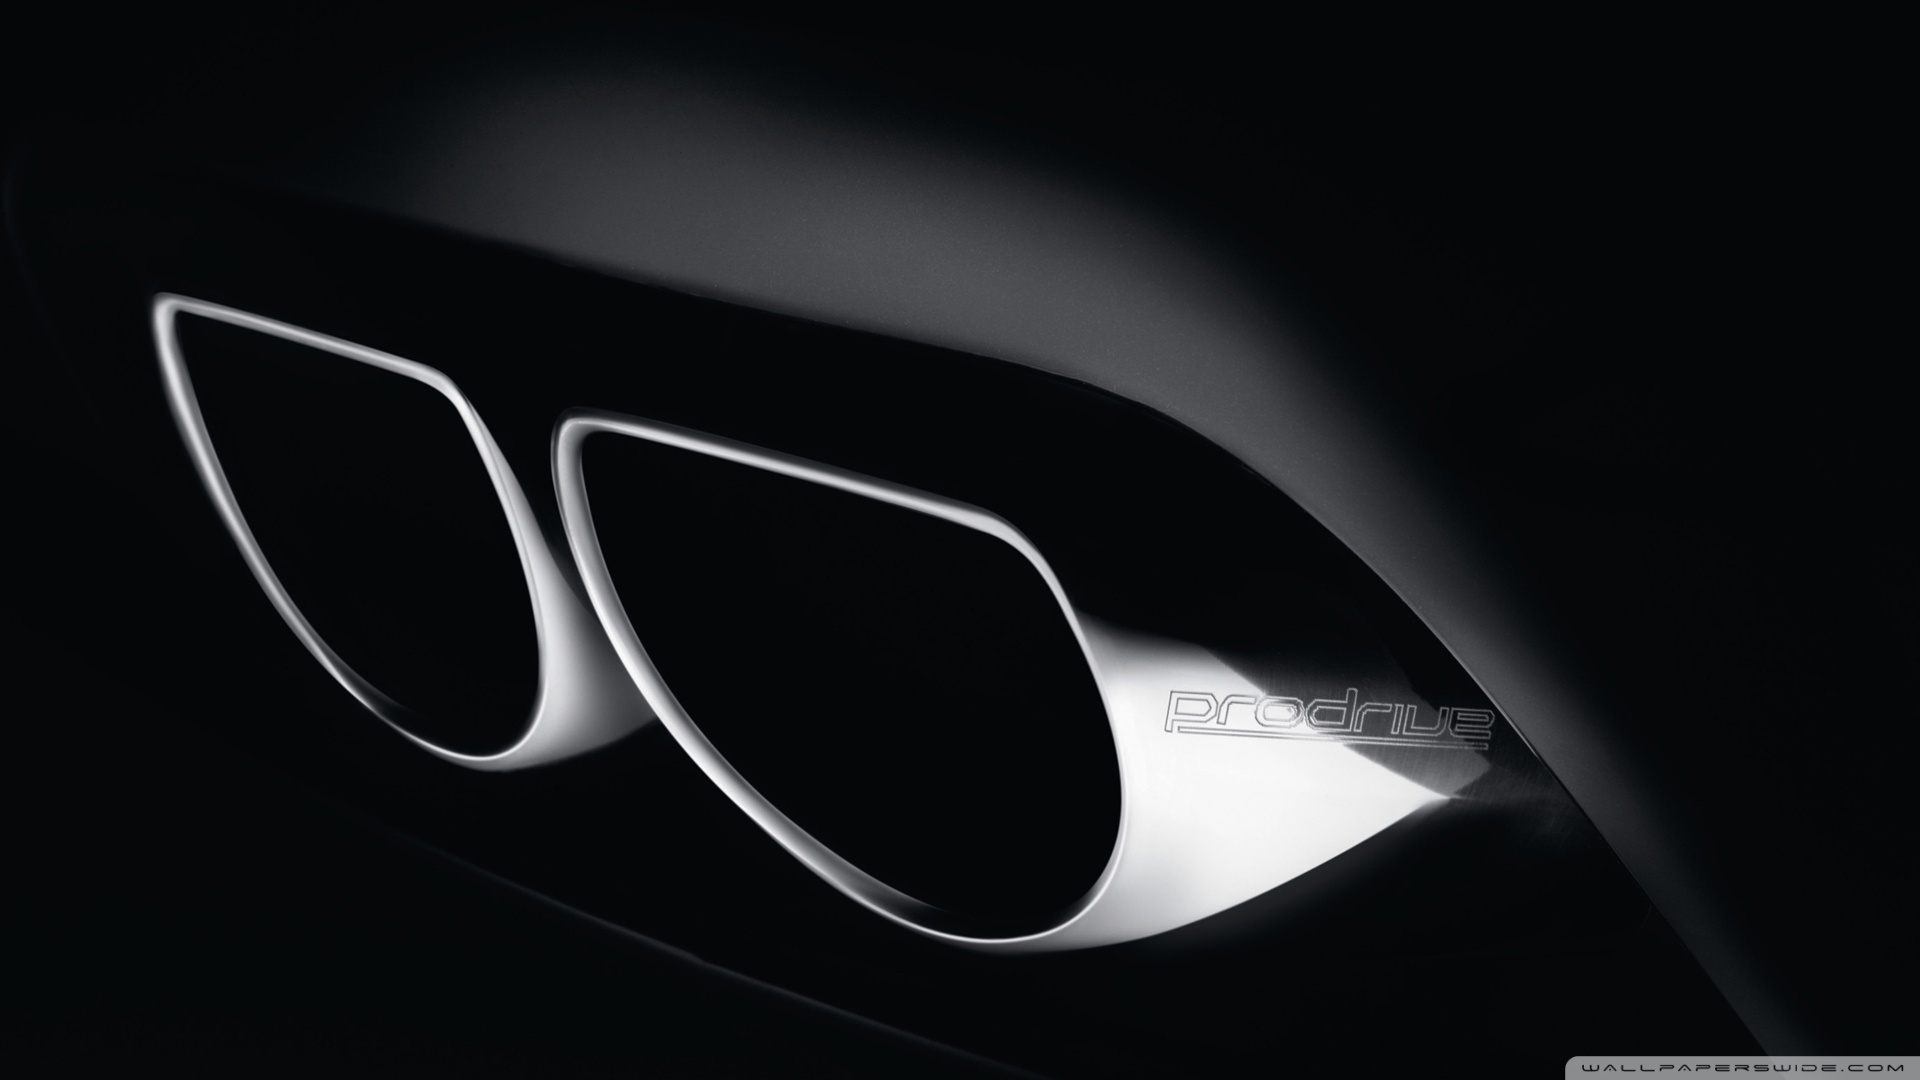 Exhaust Pipes Wallpaper 1920×1080